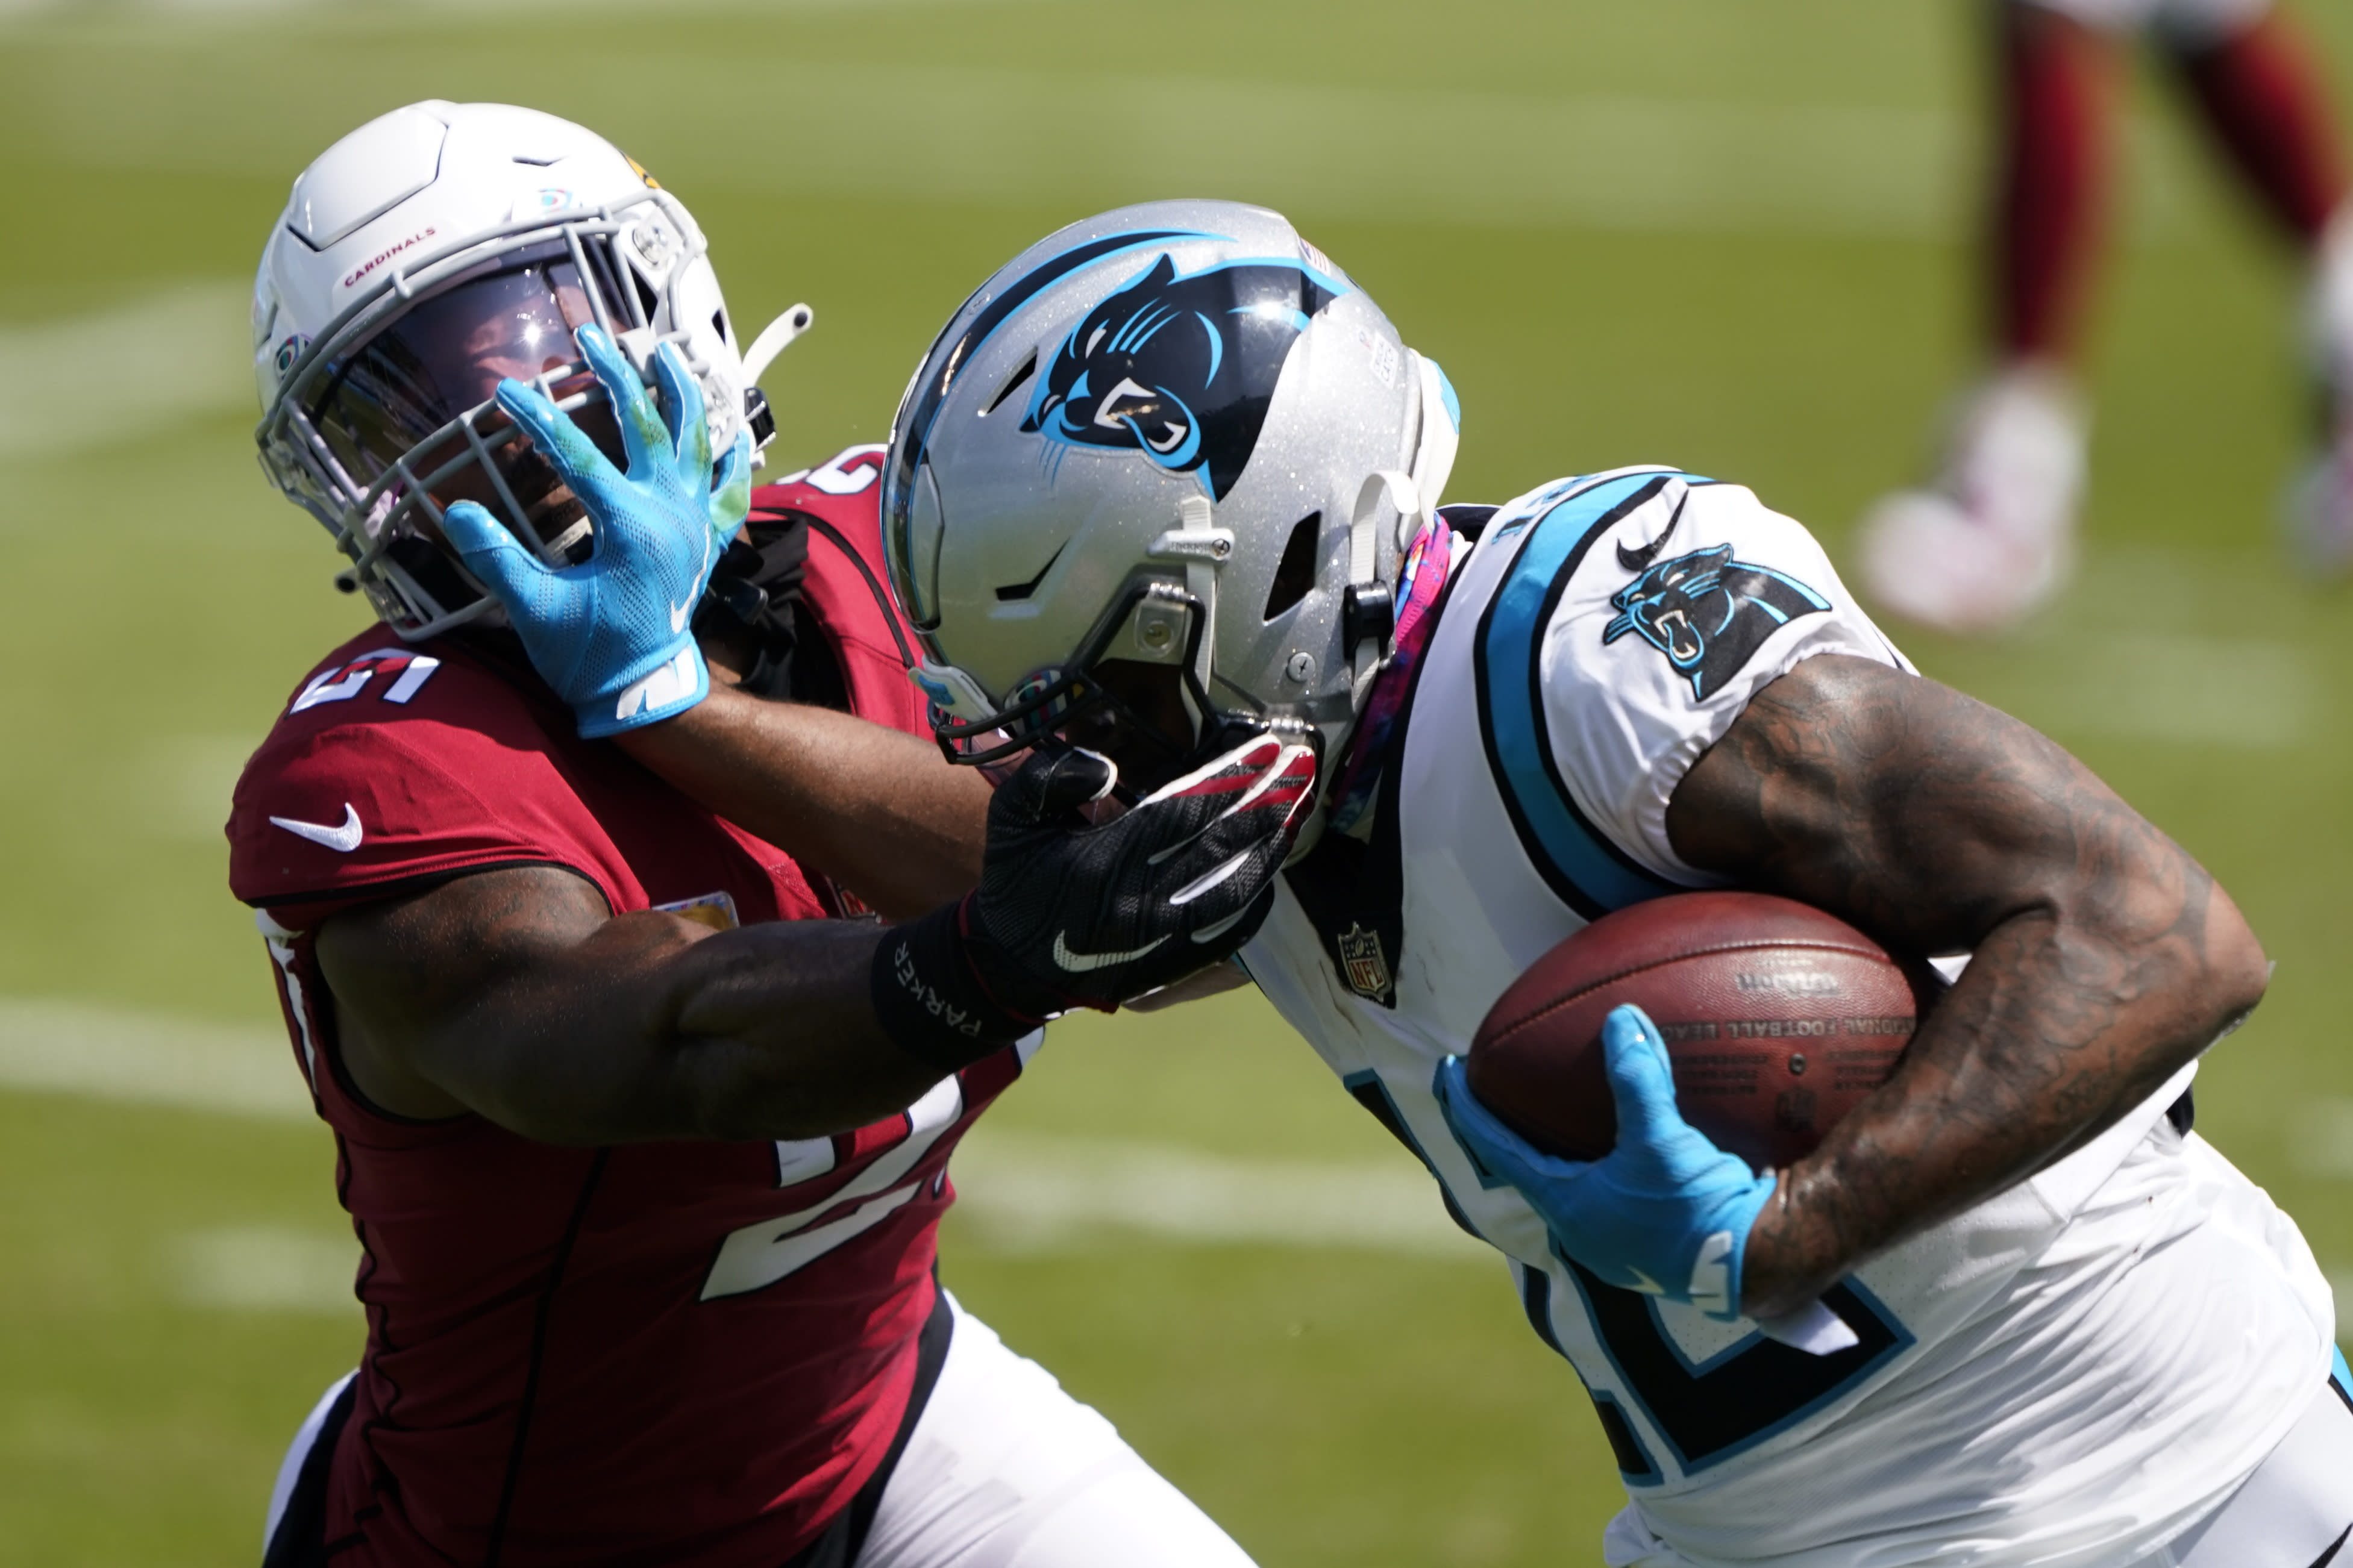 Carolina Panthers wide receiver D.J. Moore pushes way Arizona Cardinals cornerback Patrick Peterson during the first half of an NFL football game Sunday, Oct. 4, 2020, in Charlotte, N.C. (AP Photo/Brian Blanco)